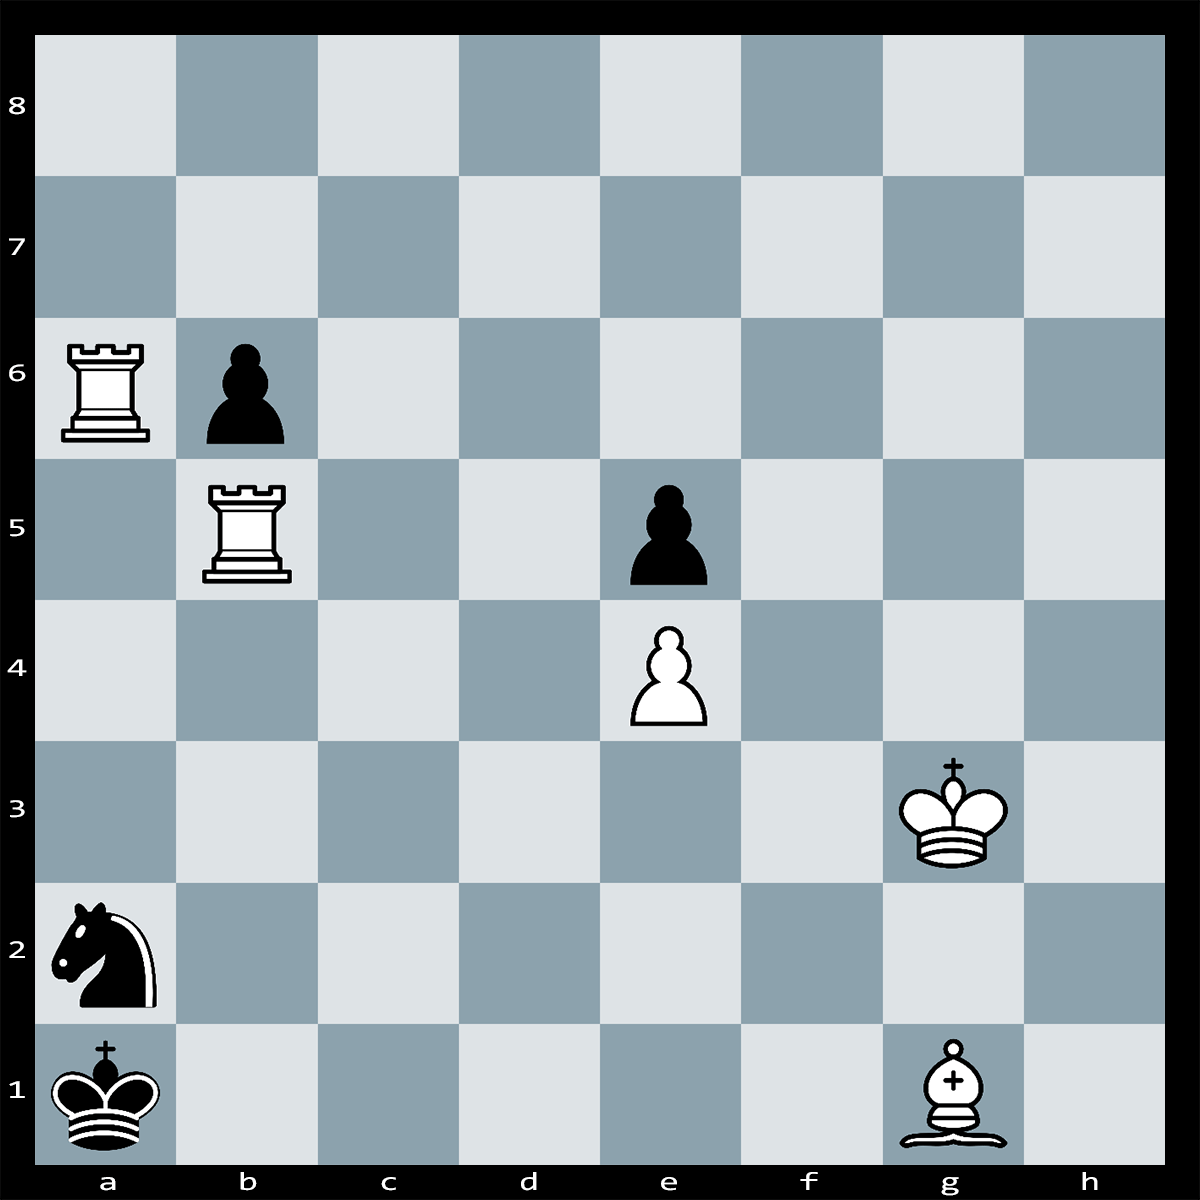 Chess Puzzle #153 - Find checkmate in four moves, white to play.